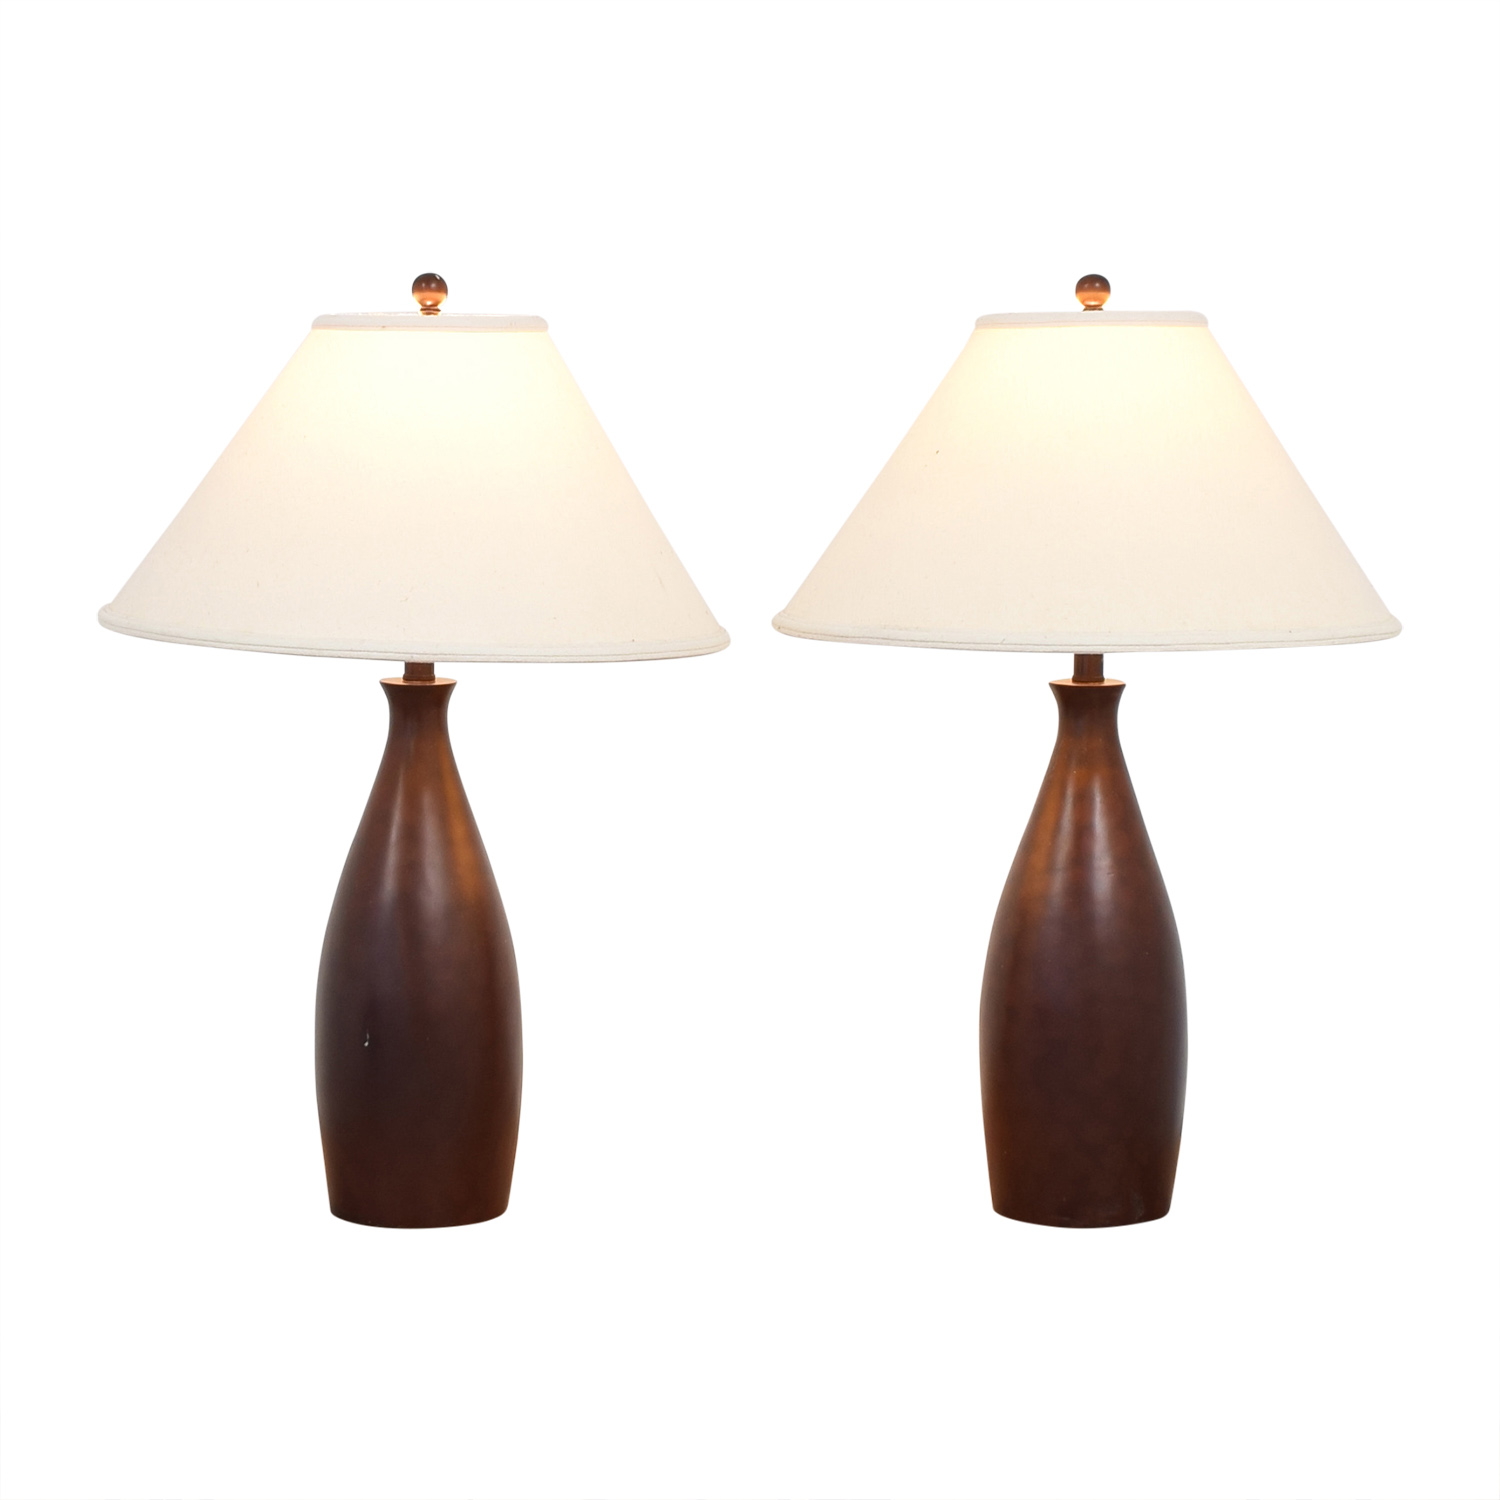 Bedside Table Lamps / Lamps